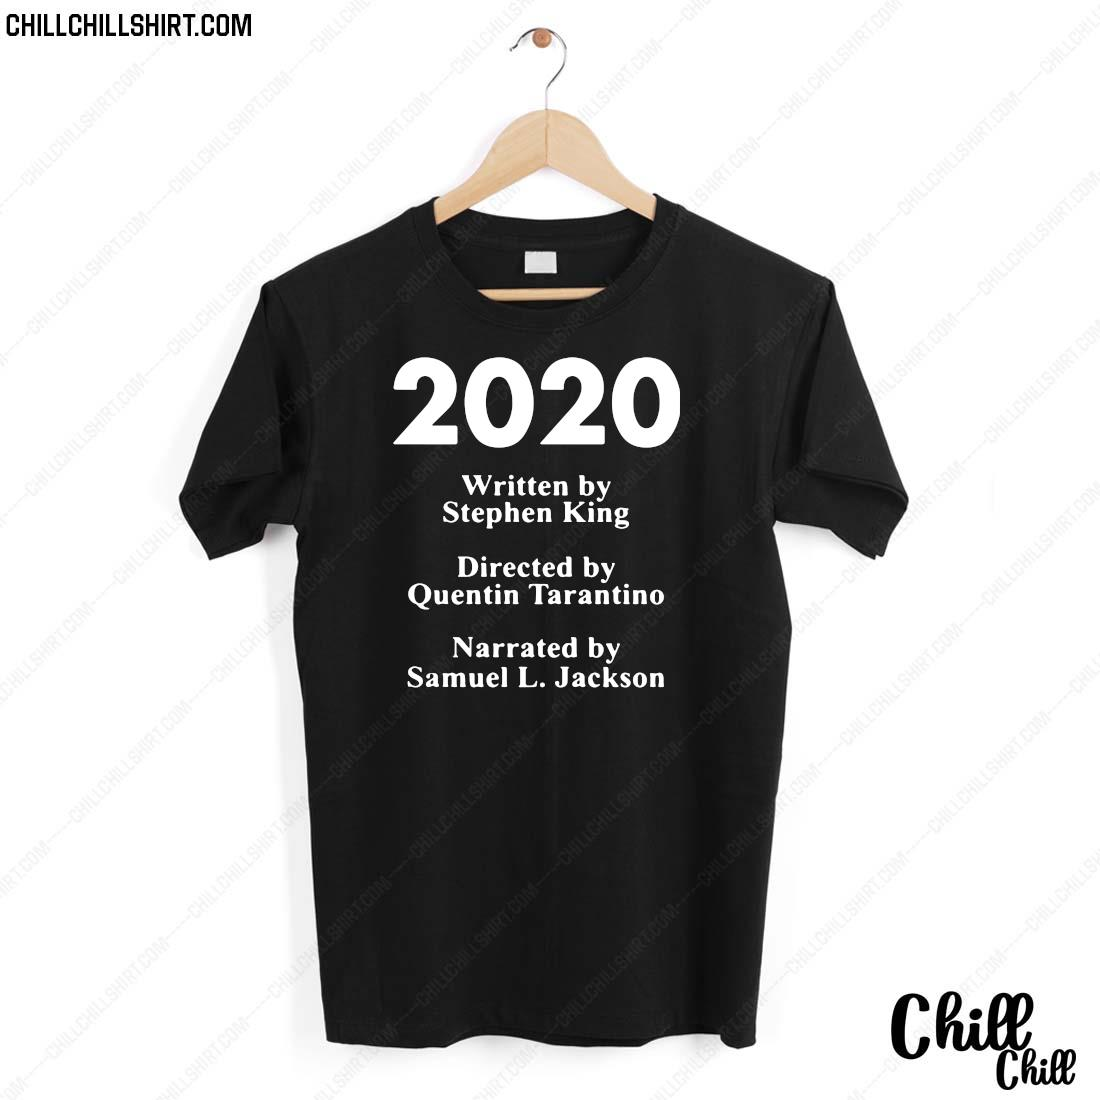 2020 Written By Stephen King Directed By Quentin Tarantino Narrated By Samuel L. Jackson Shirt